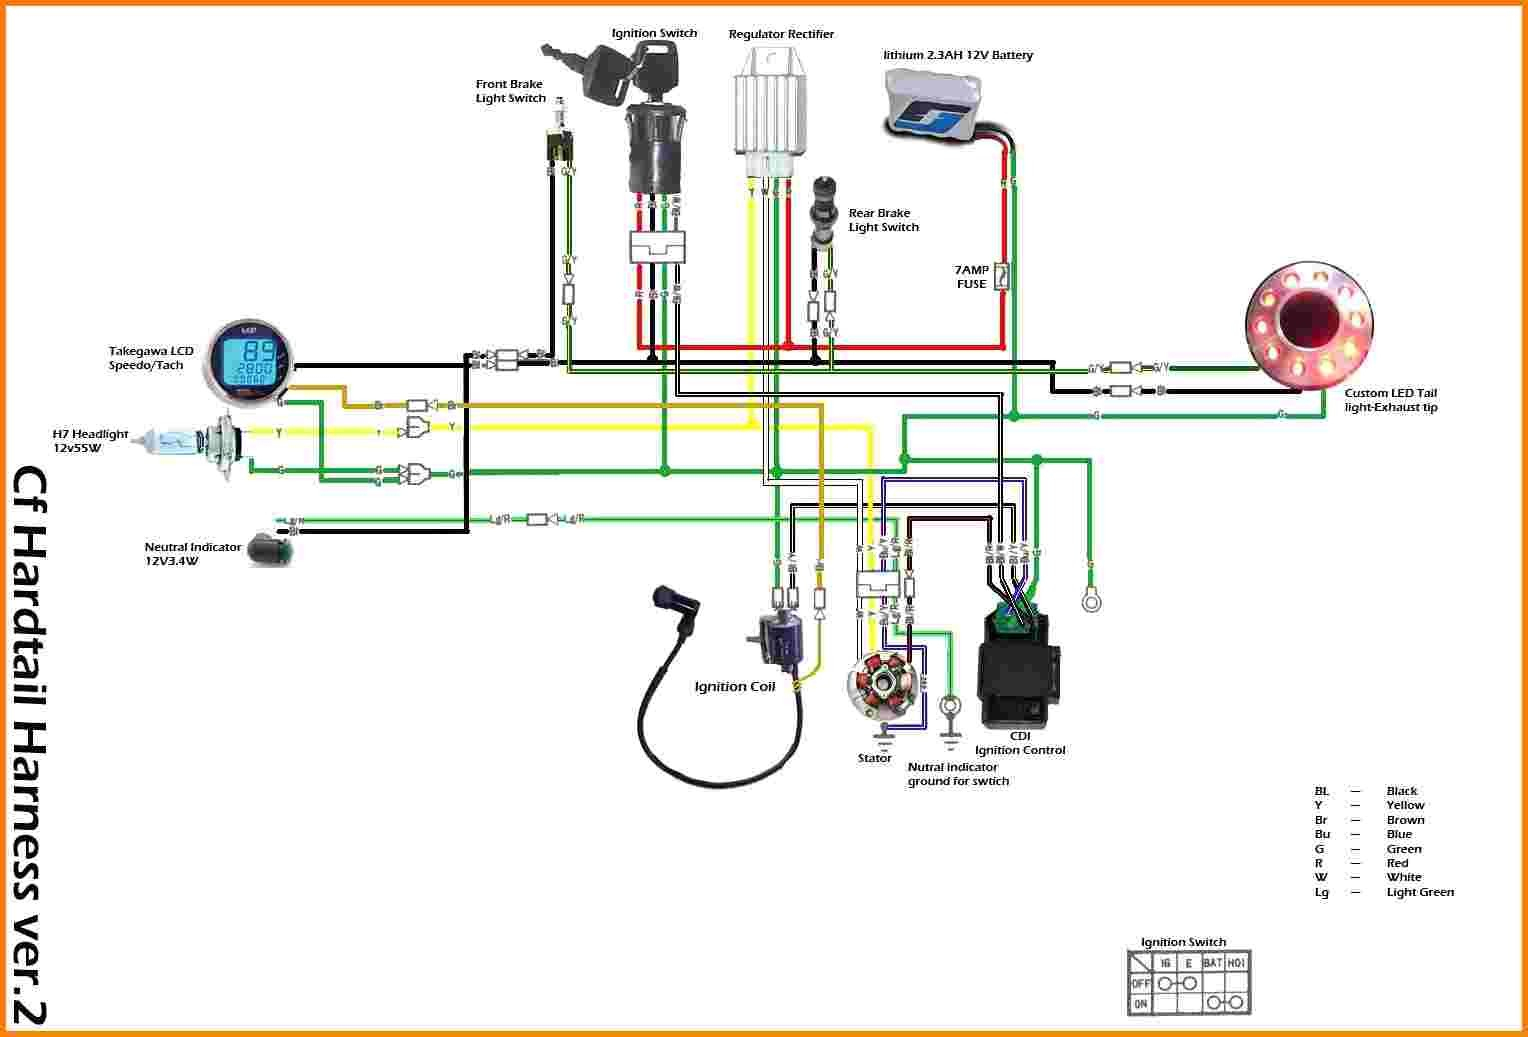 Chinese Four Wheeler Wiring Diagram - Data Wiring Diagram Today - Chinese Atv Wiring Diagram